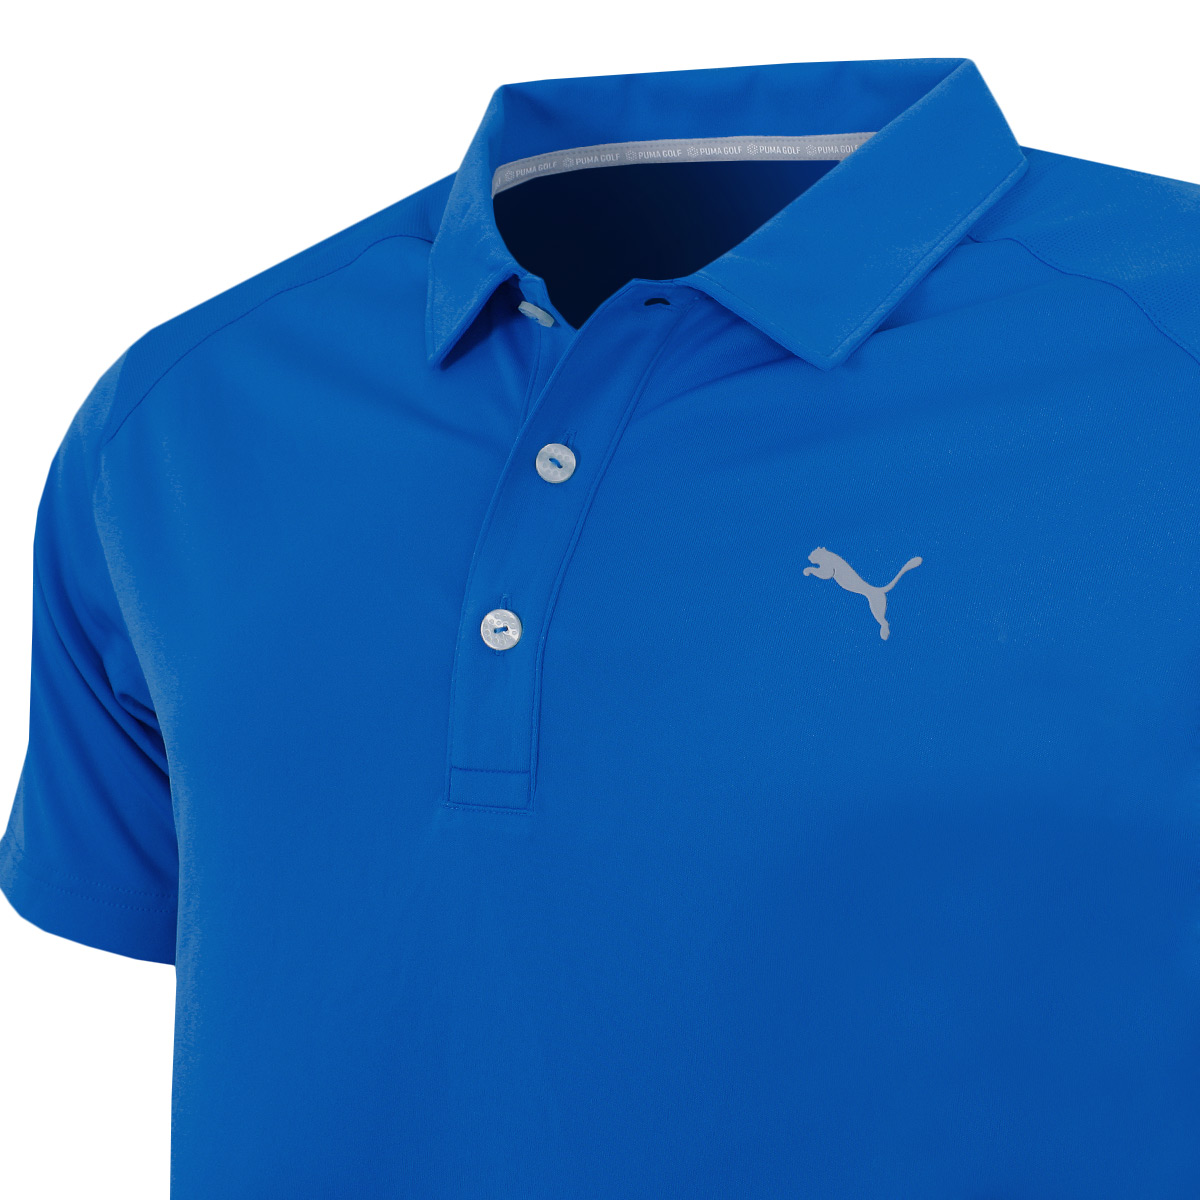 Puma-Golf-Mens-Essential-Pounce-Polo-Shirt-DryCell-Lightweight-Tech-43-OFF-RRP thumbnail 34